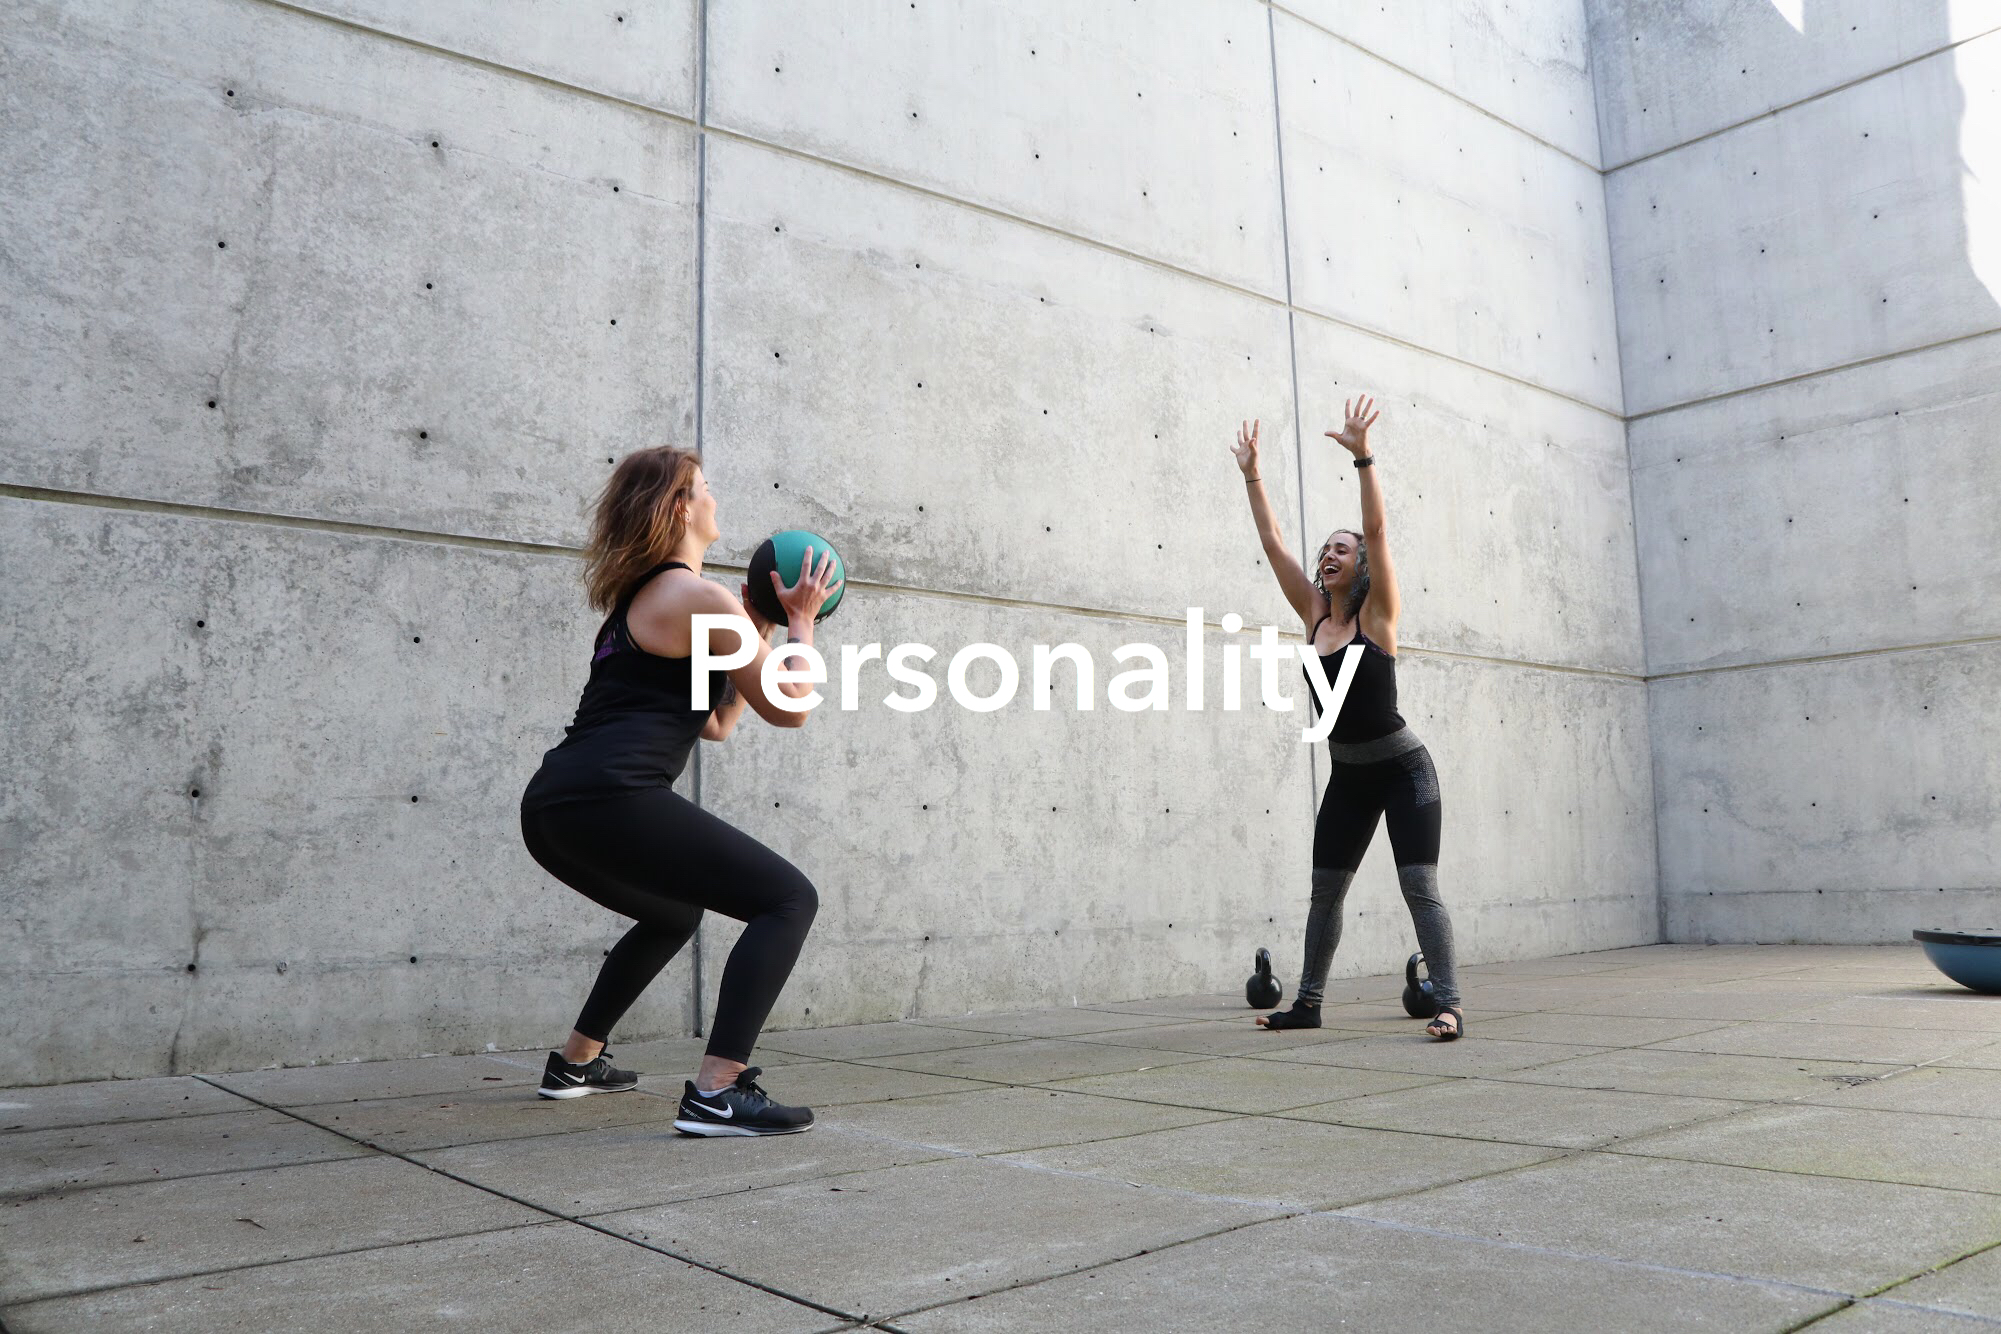 Hiring-a-personal-trainer-personality.JPG